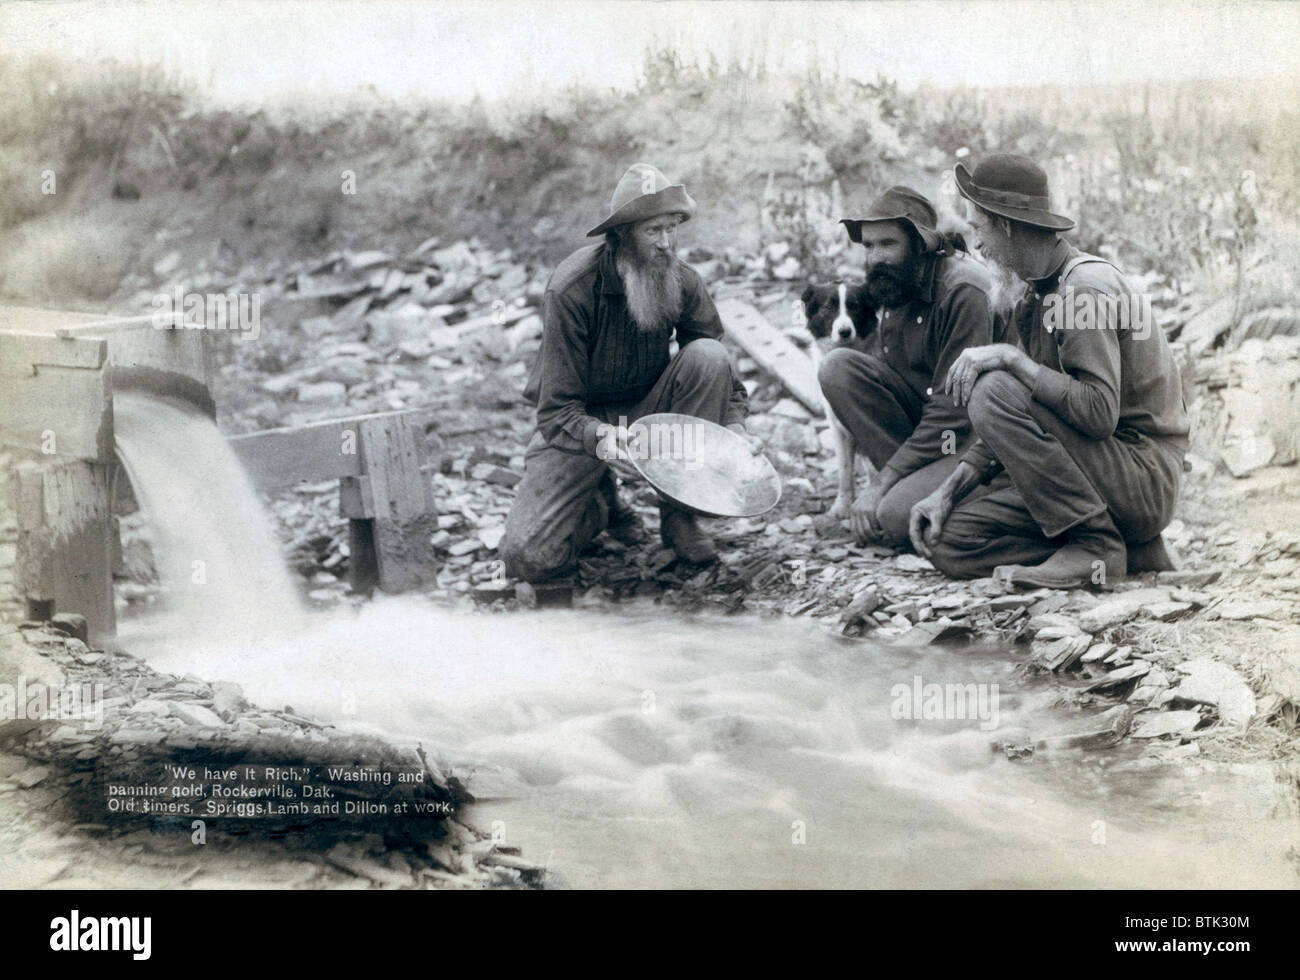 Three men, with dog, panning for gold in a stream in the Black Hills of South Dakota in 1889. Old timers, Spriggs, - Stock Image